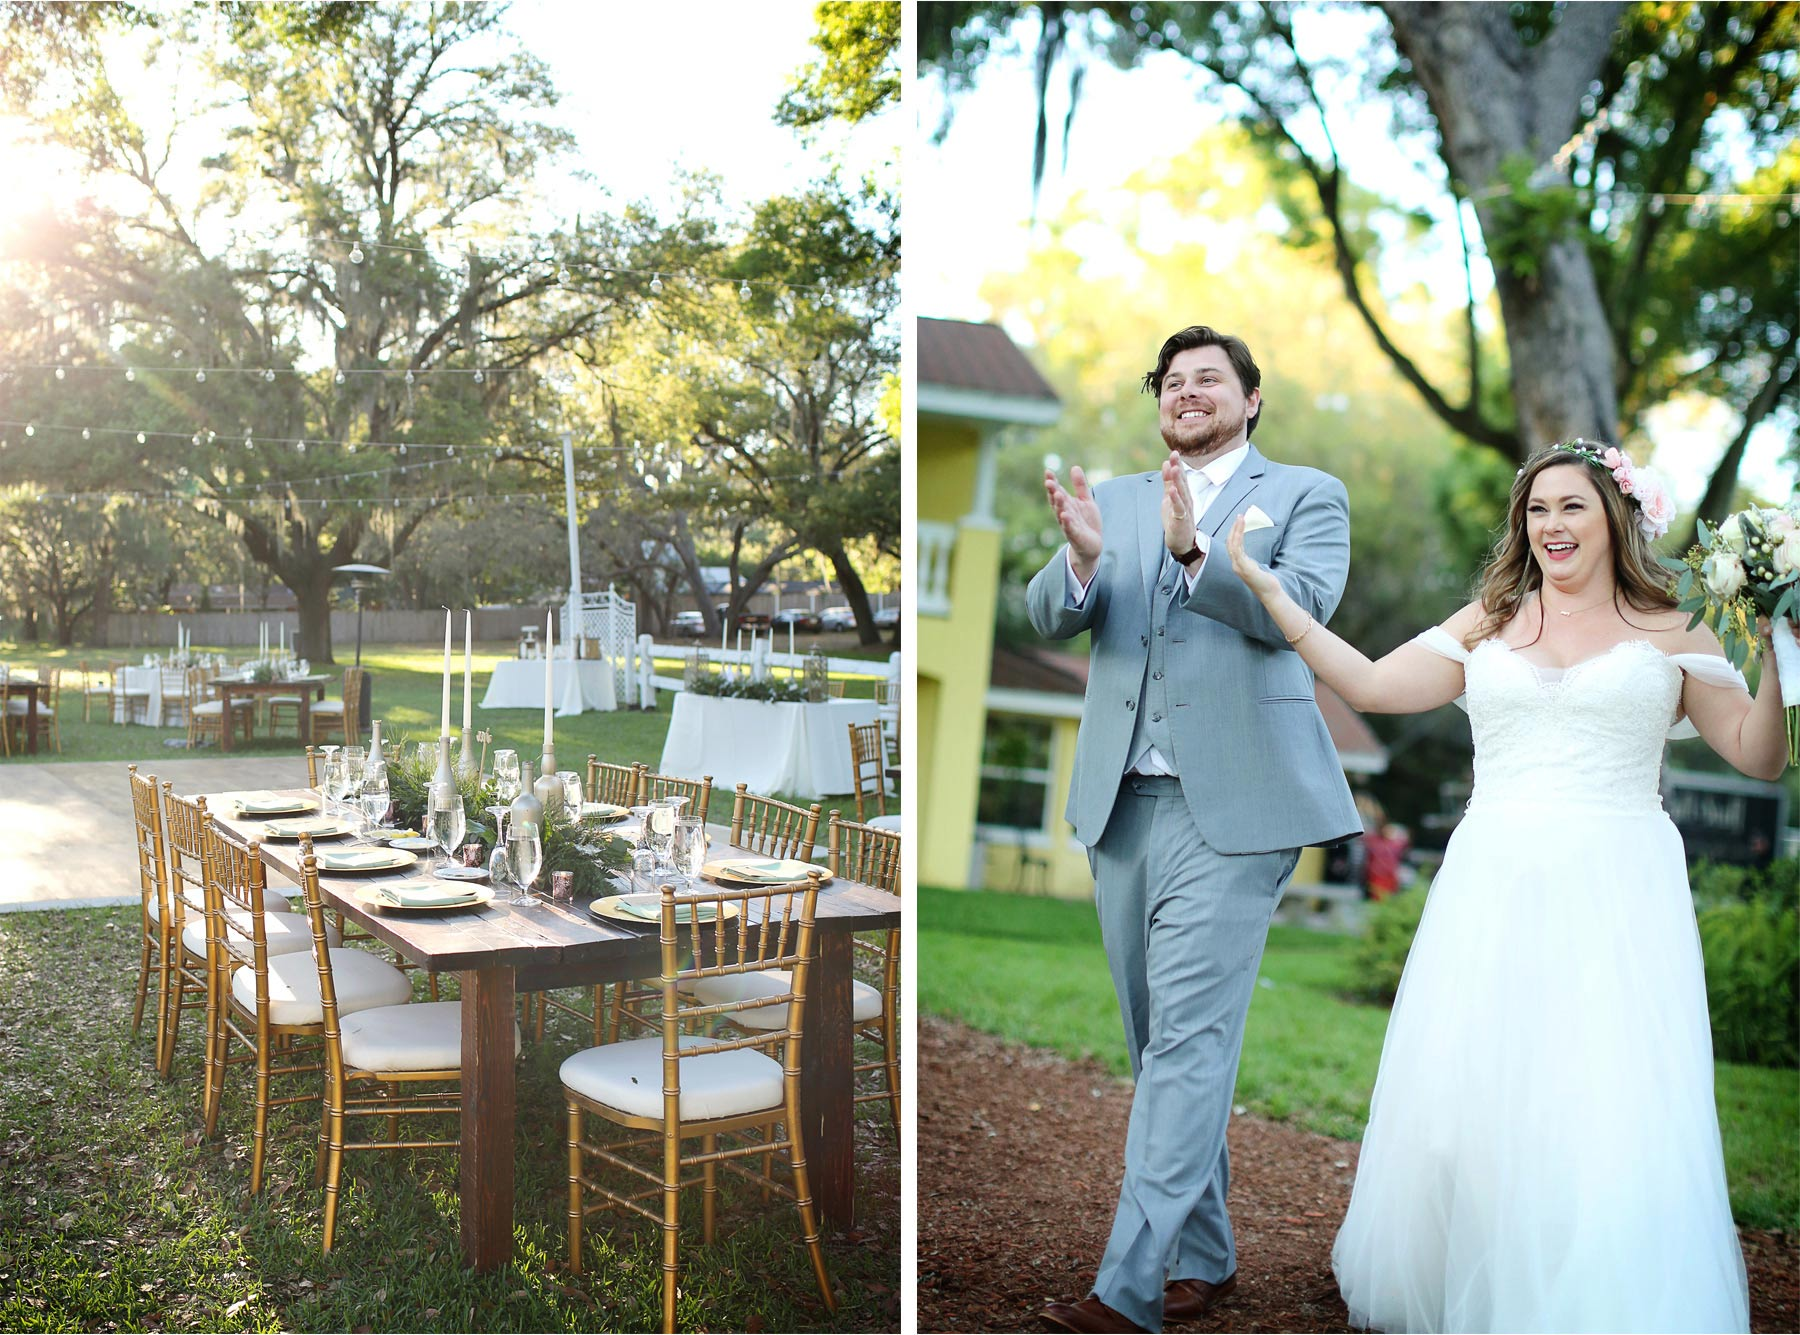 23-Brandon-Florida-Wedding-Photographer-by-Andrew-Vick-Photography-Casa-Lantana-Spring-Reception-Bride-Groom-Table-Setting-Decor-Decorations-Details-Grand-March-Kristianna-and-Ben.jpg